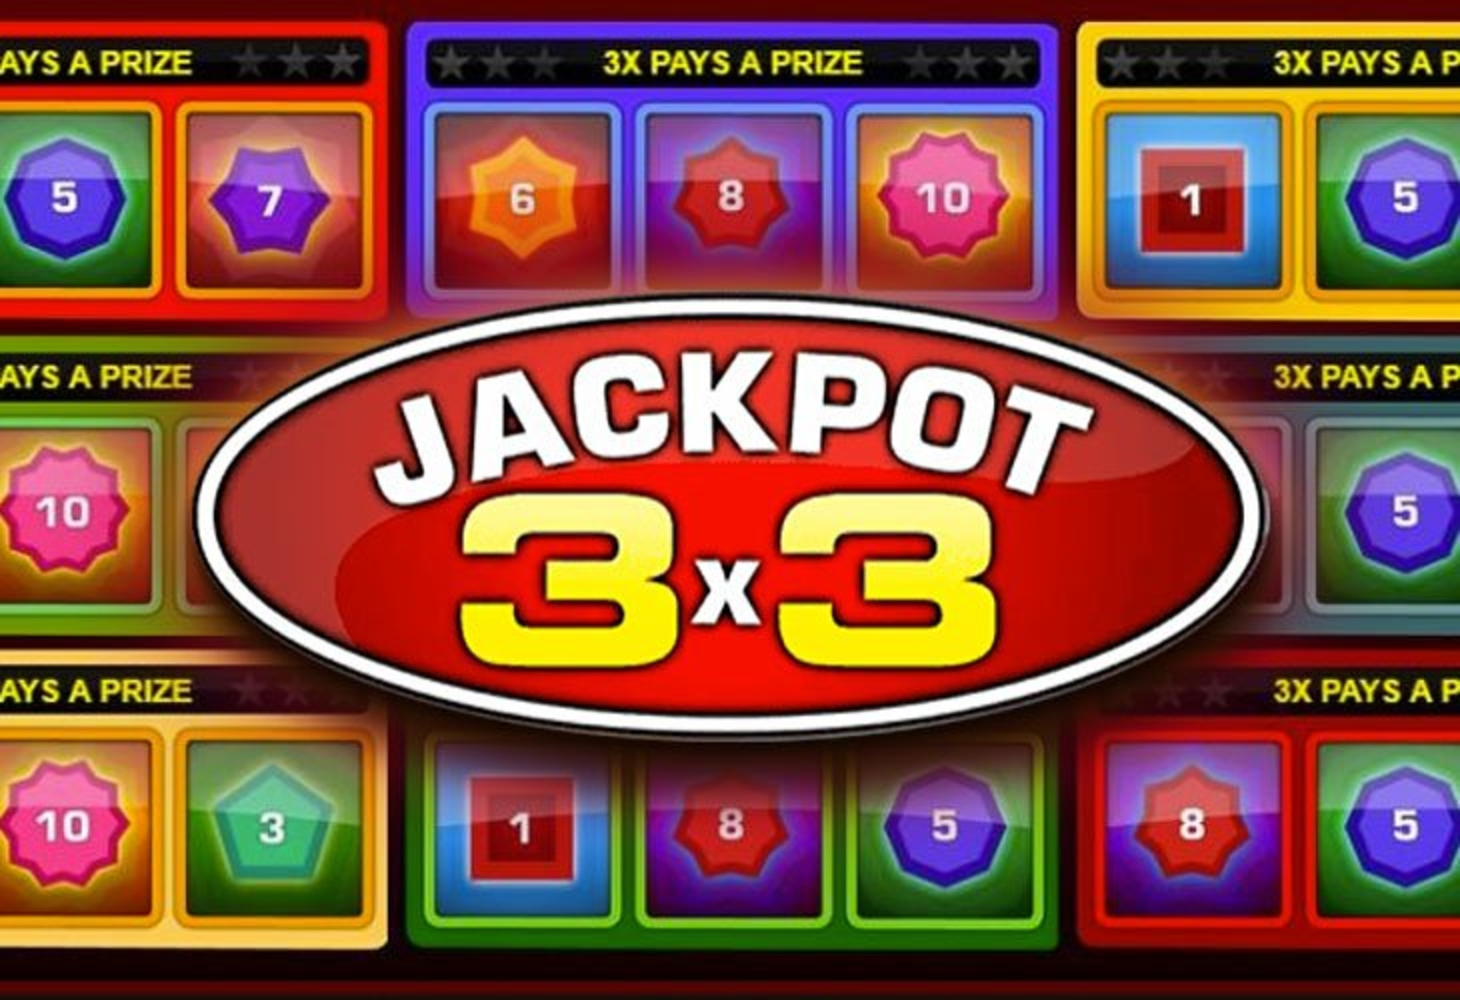 The Jackpot 3x3 Online Slot Demo Game by 1x2 Gaming